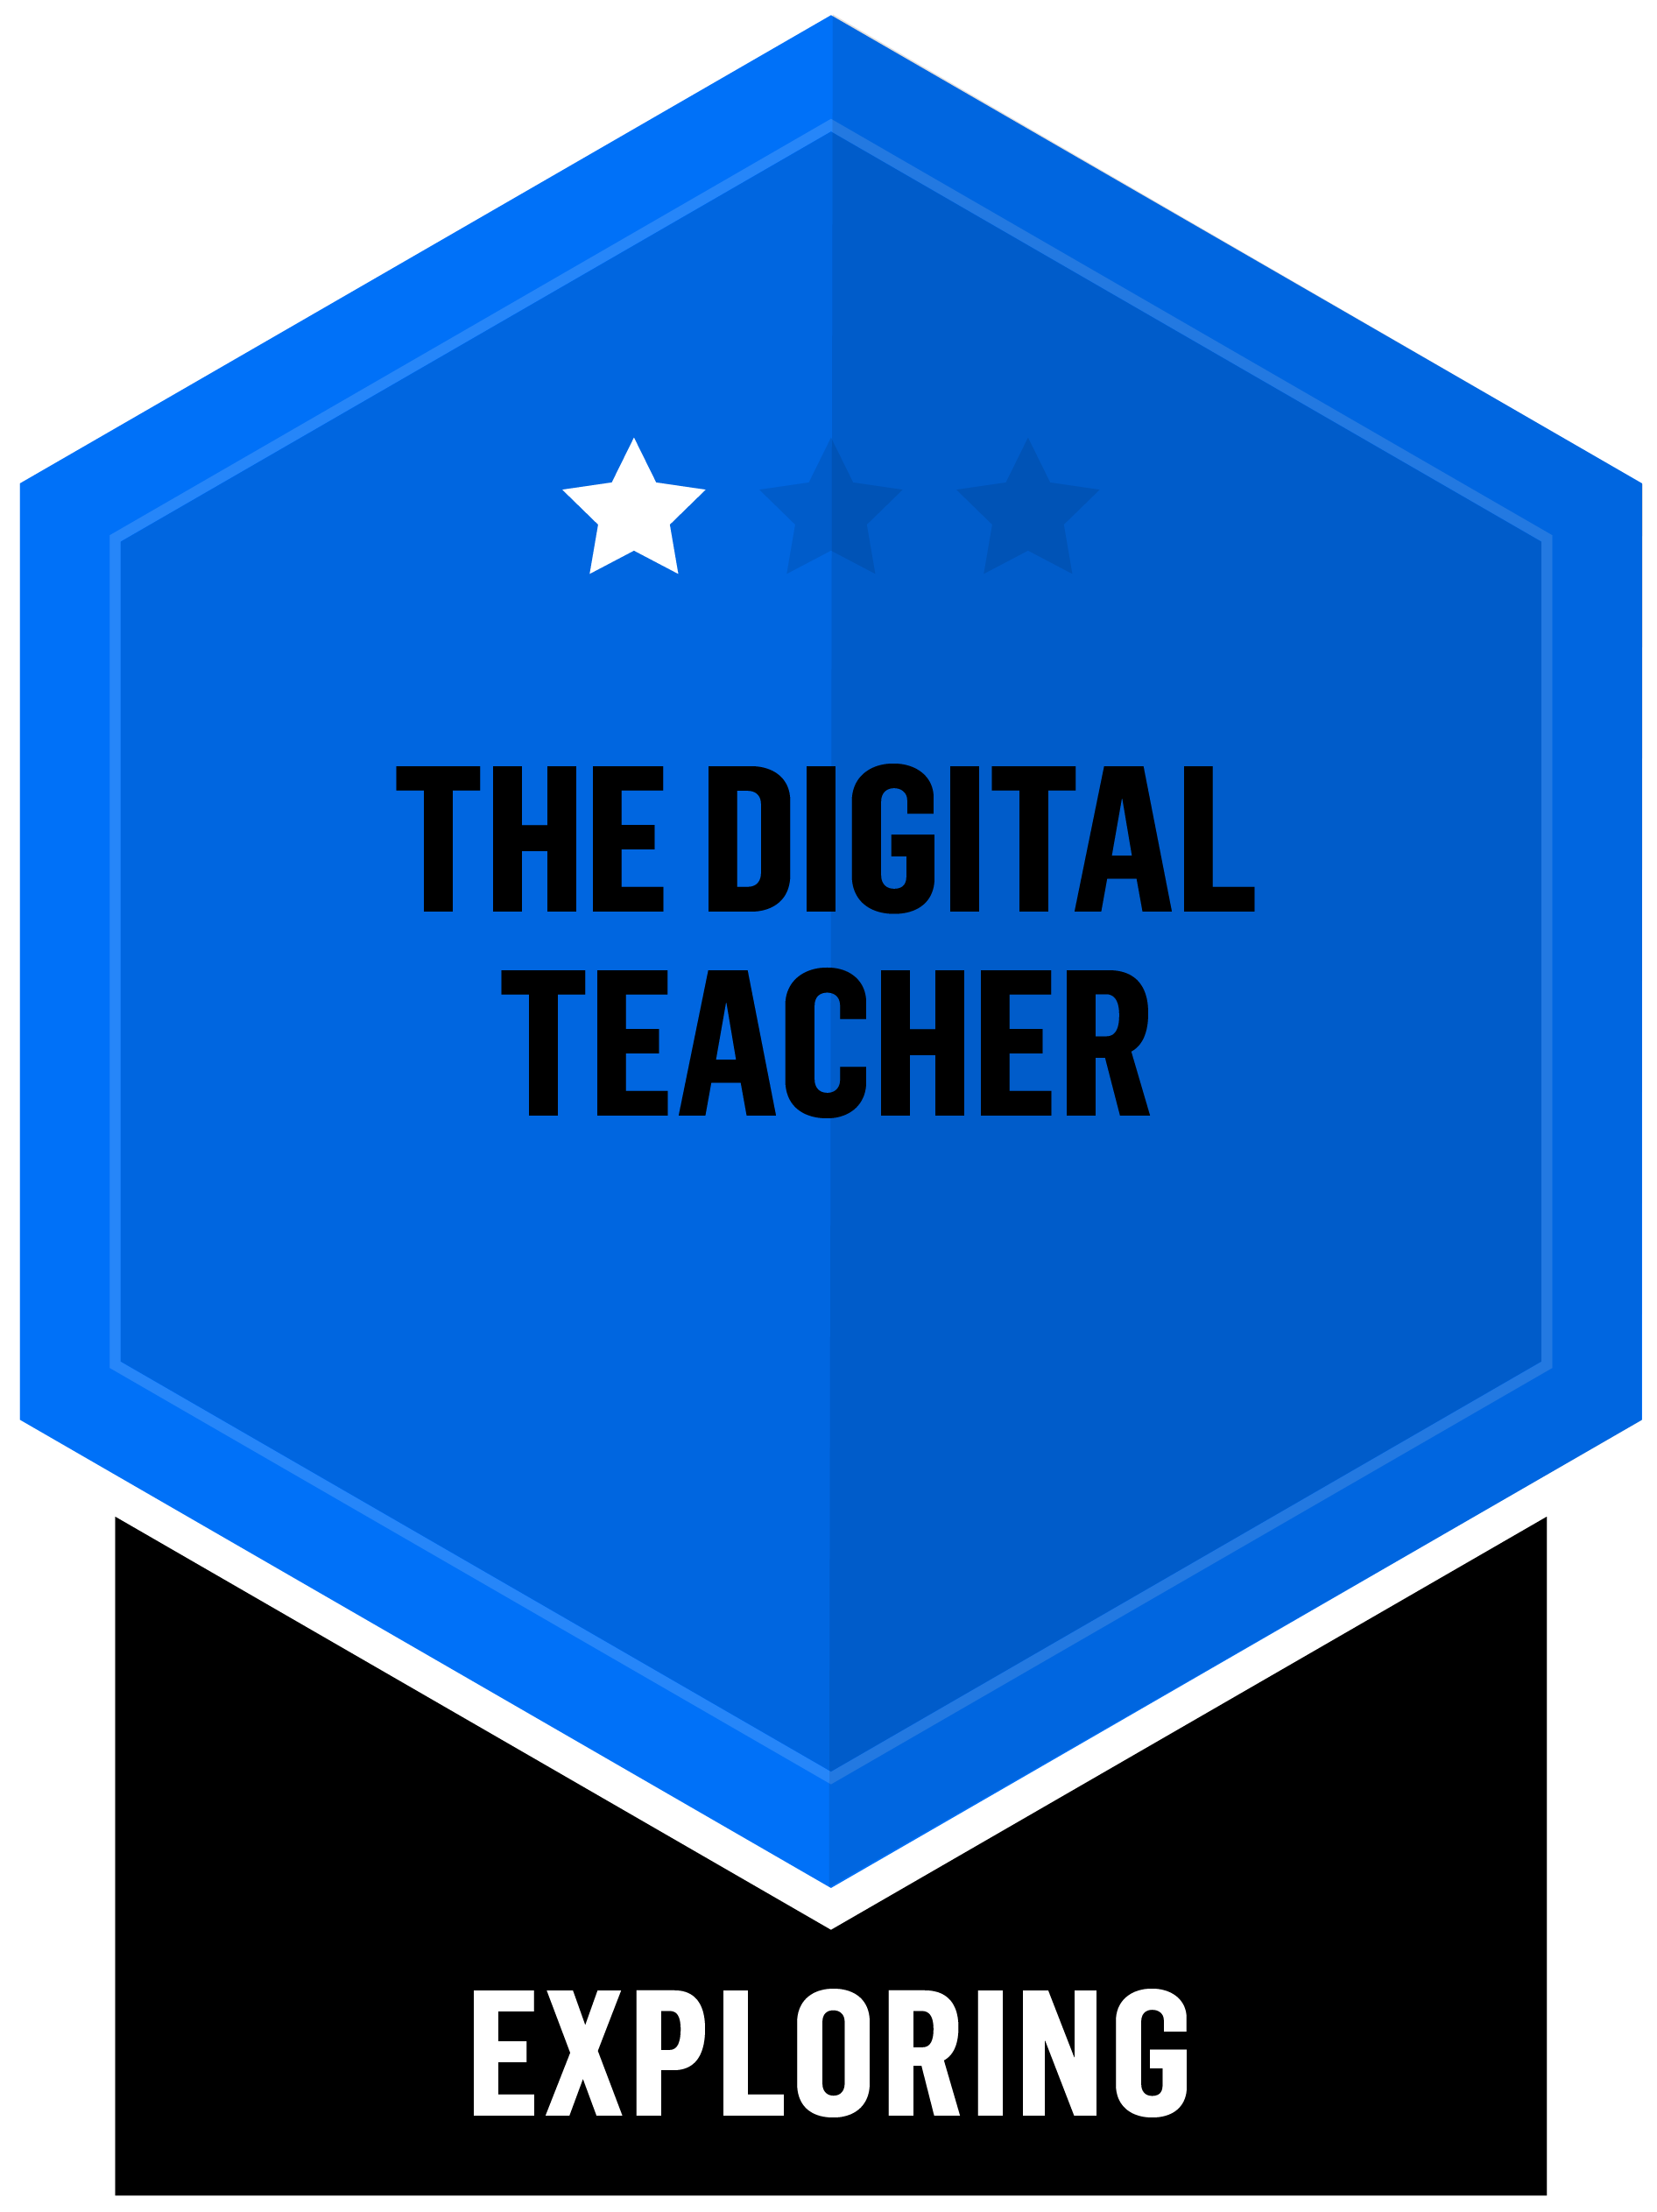 The Digital Teacher - Exploring - 1 Star